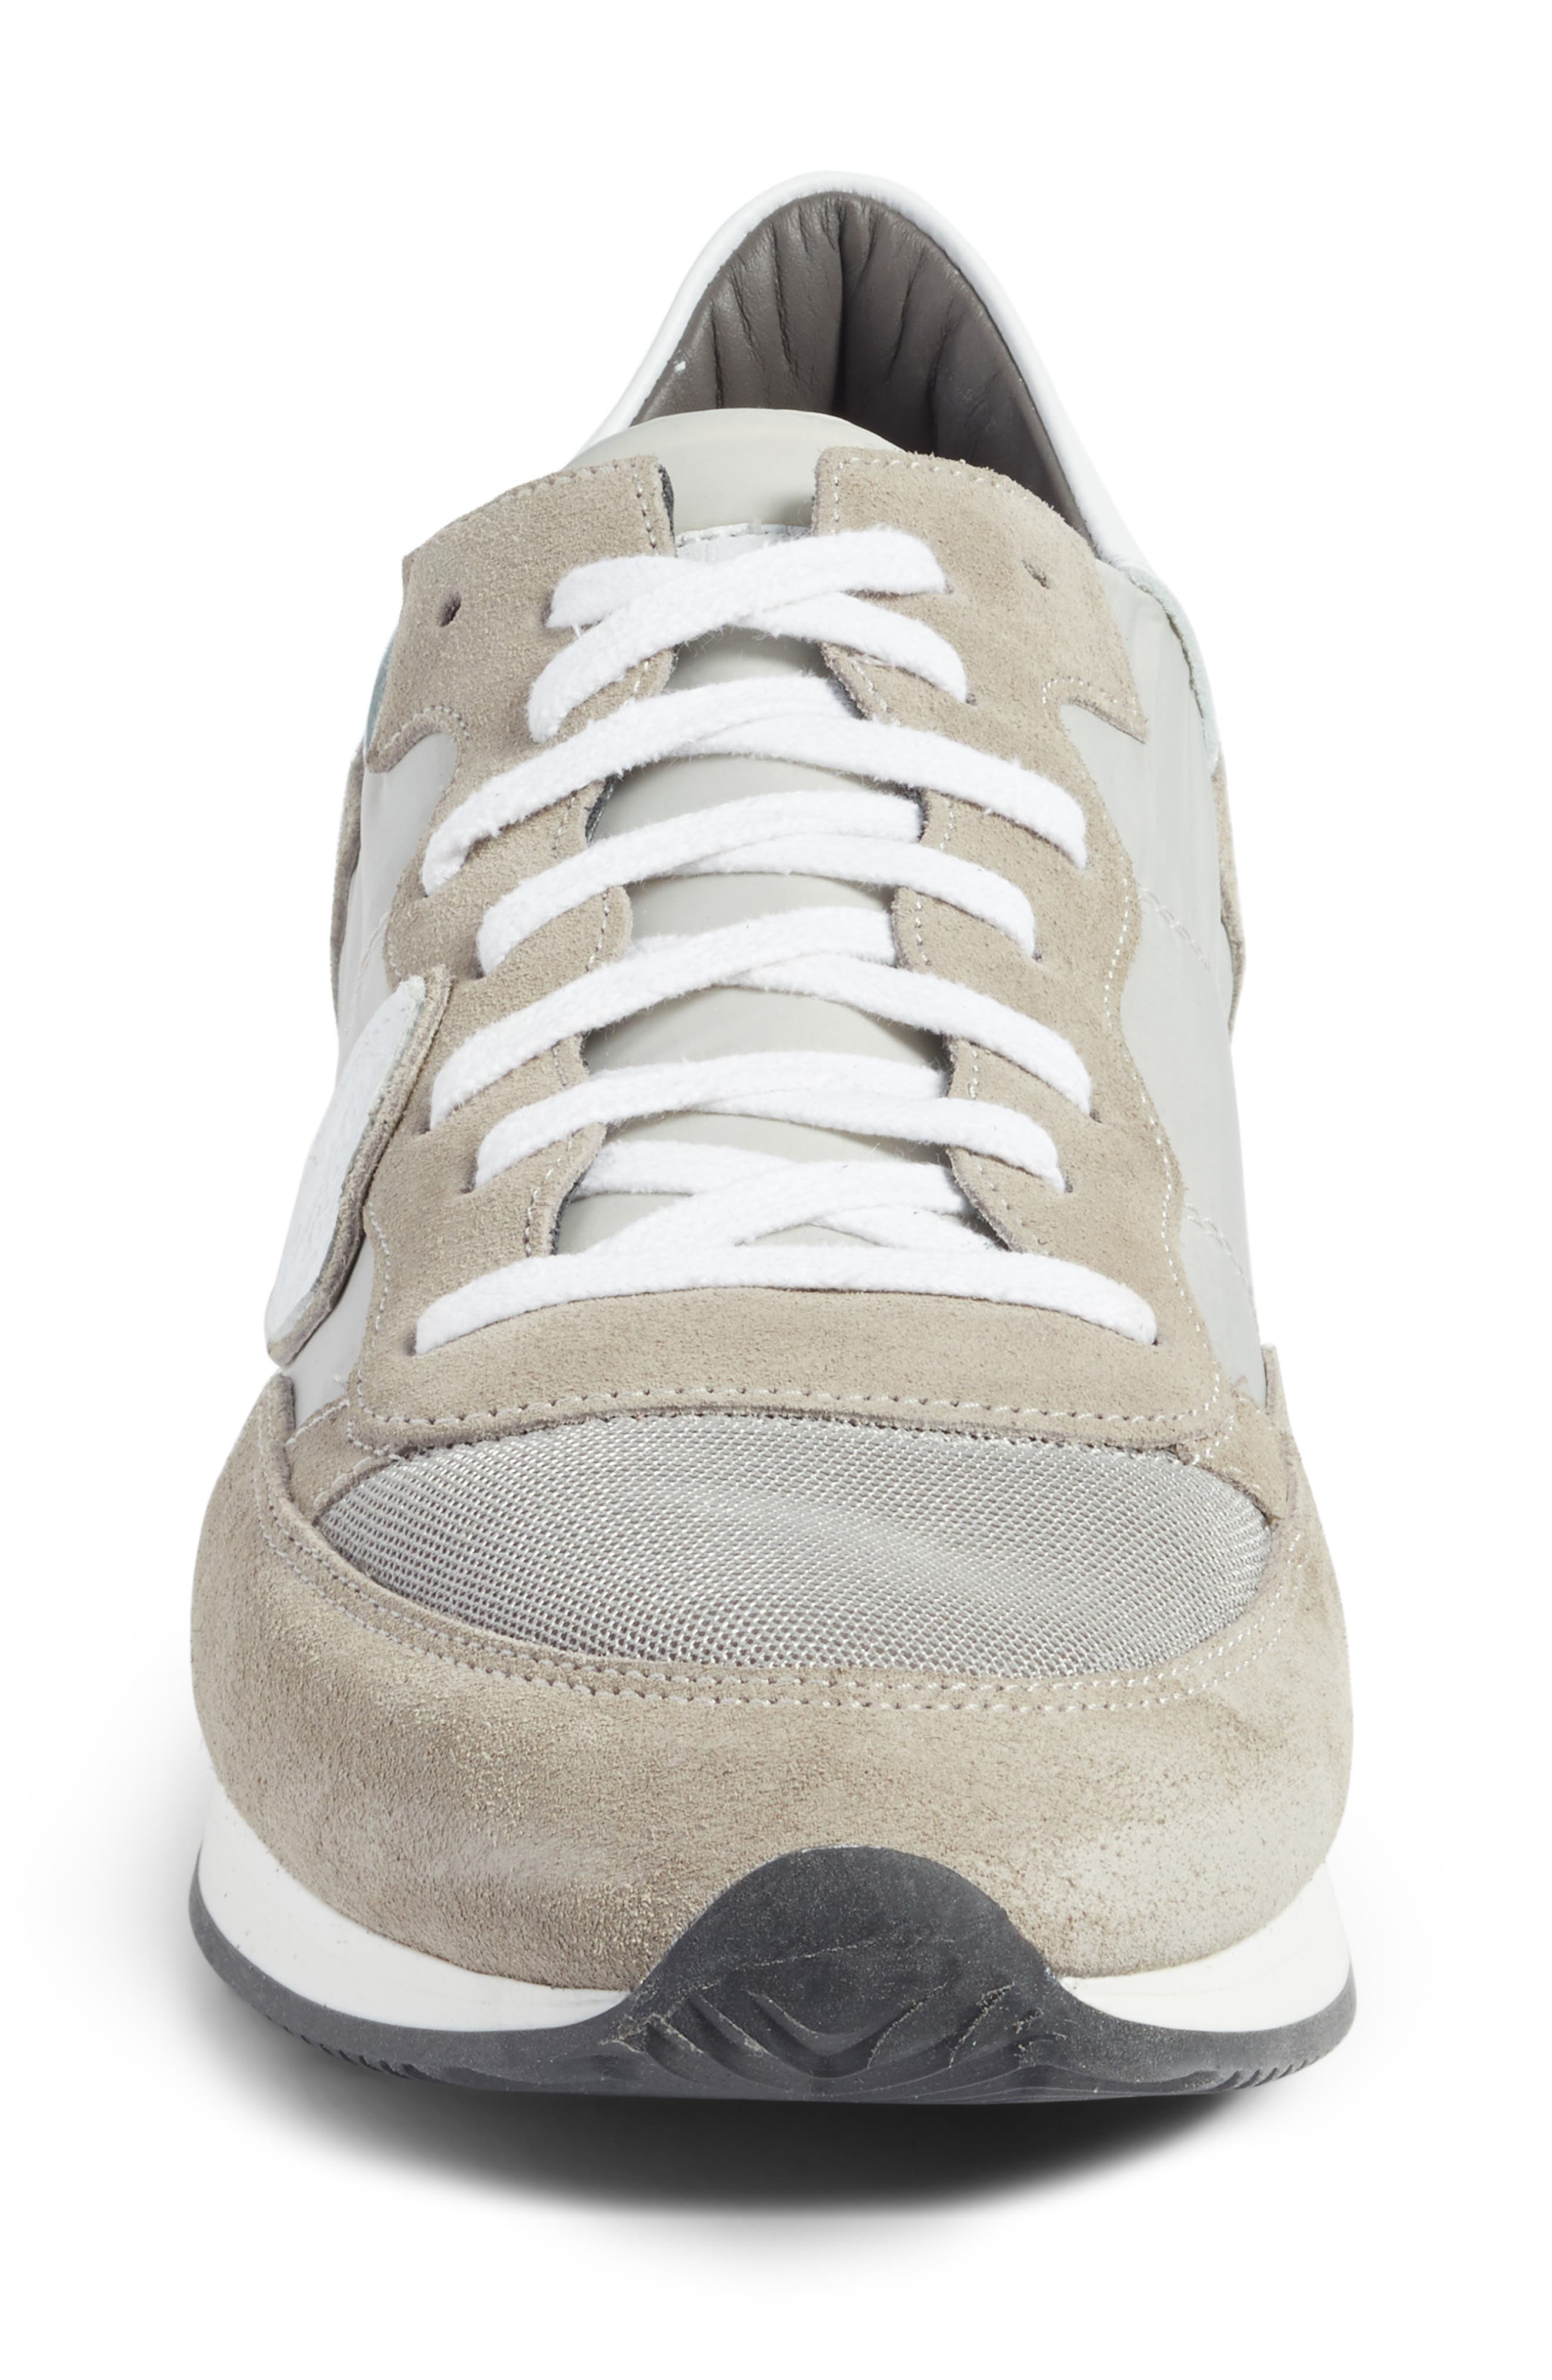 Tropez Low Top Sneaker,                             Alternate thumbnail 4, color,                             Grey/ White